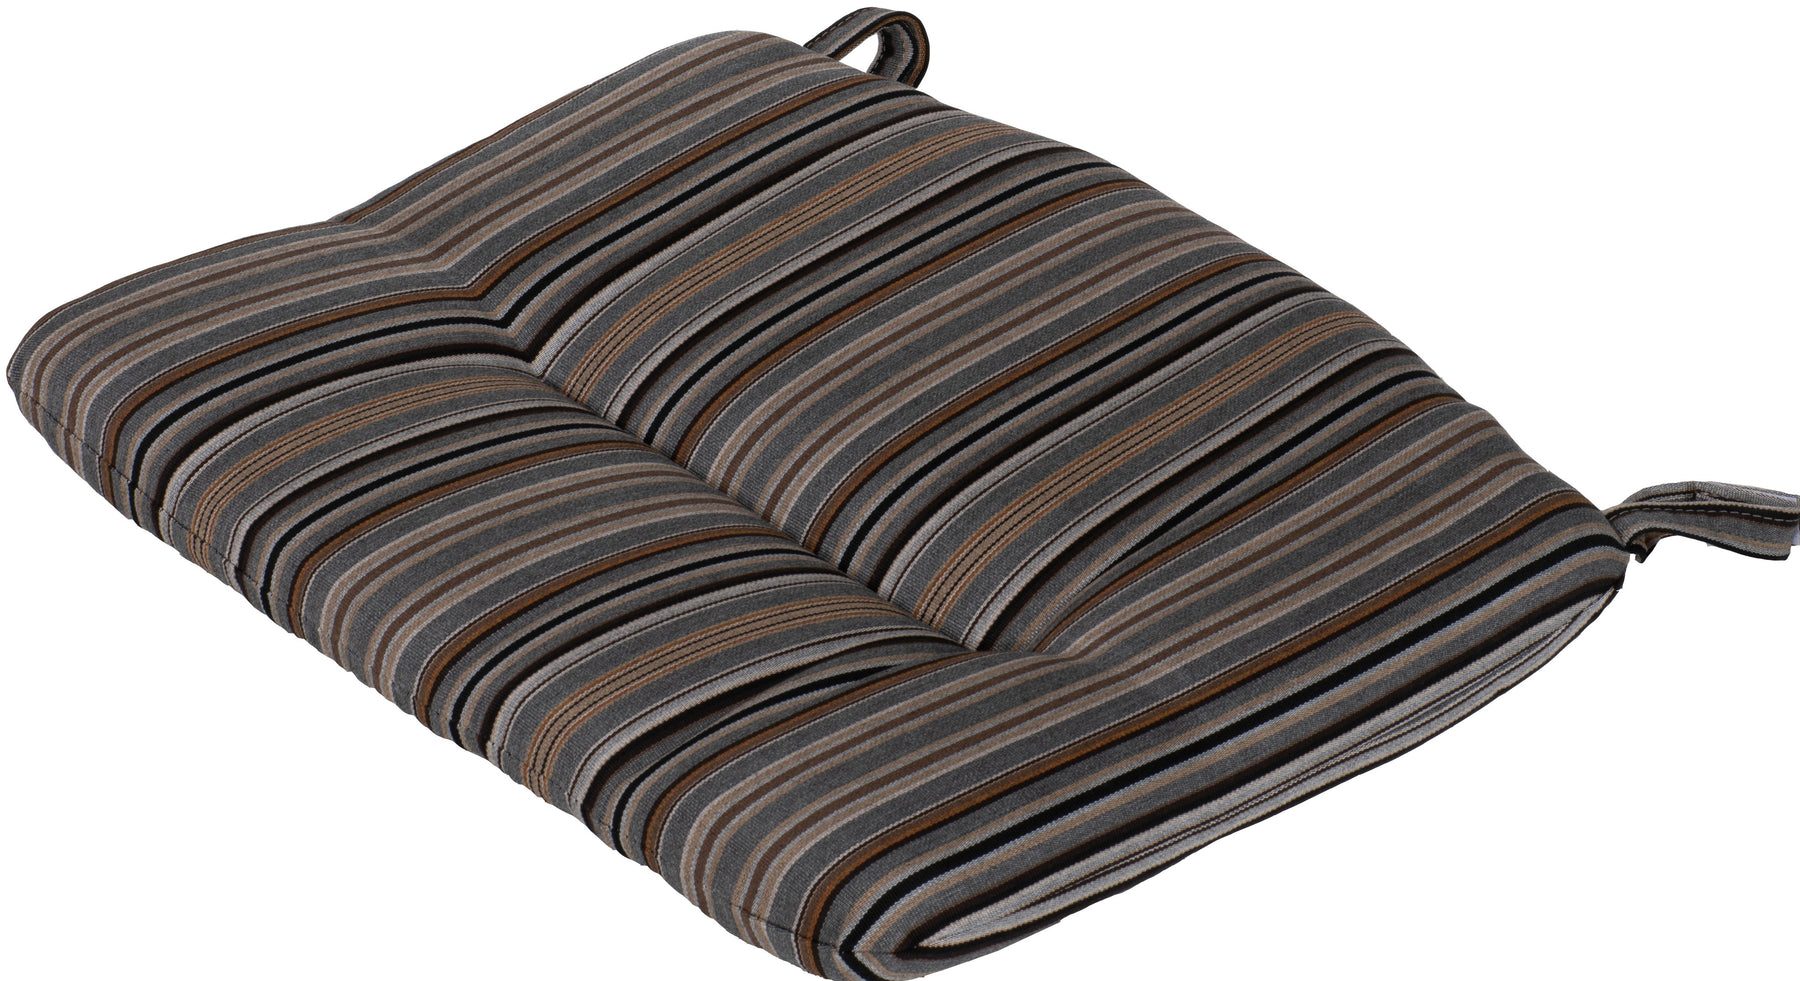 Berlin Garden Single Comfo and Cozi Back Seat Cushion